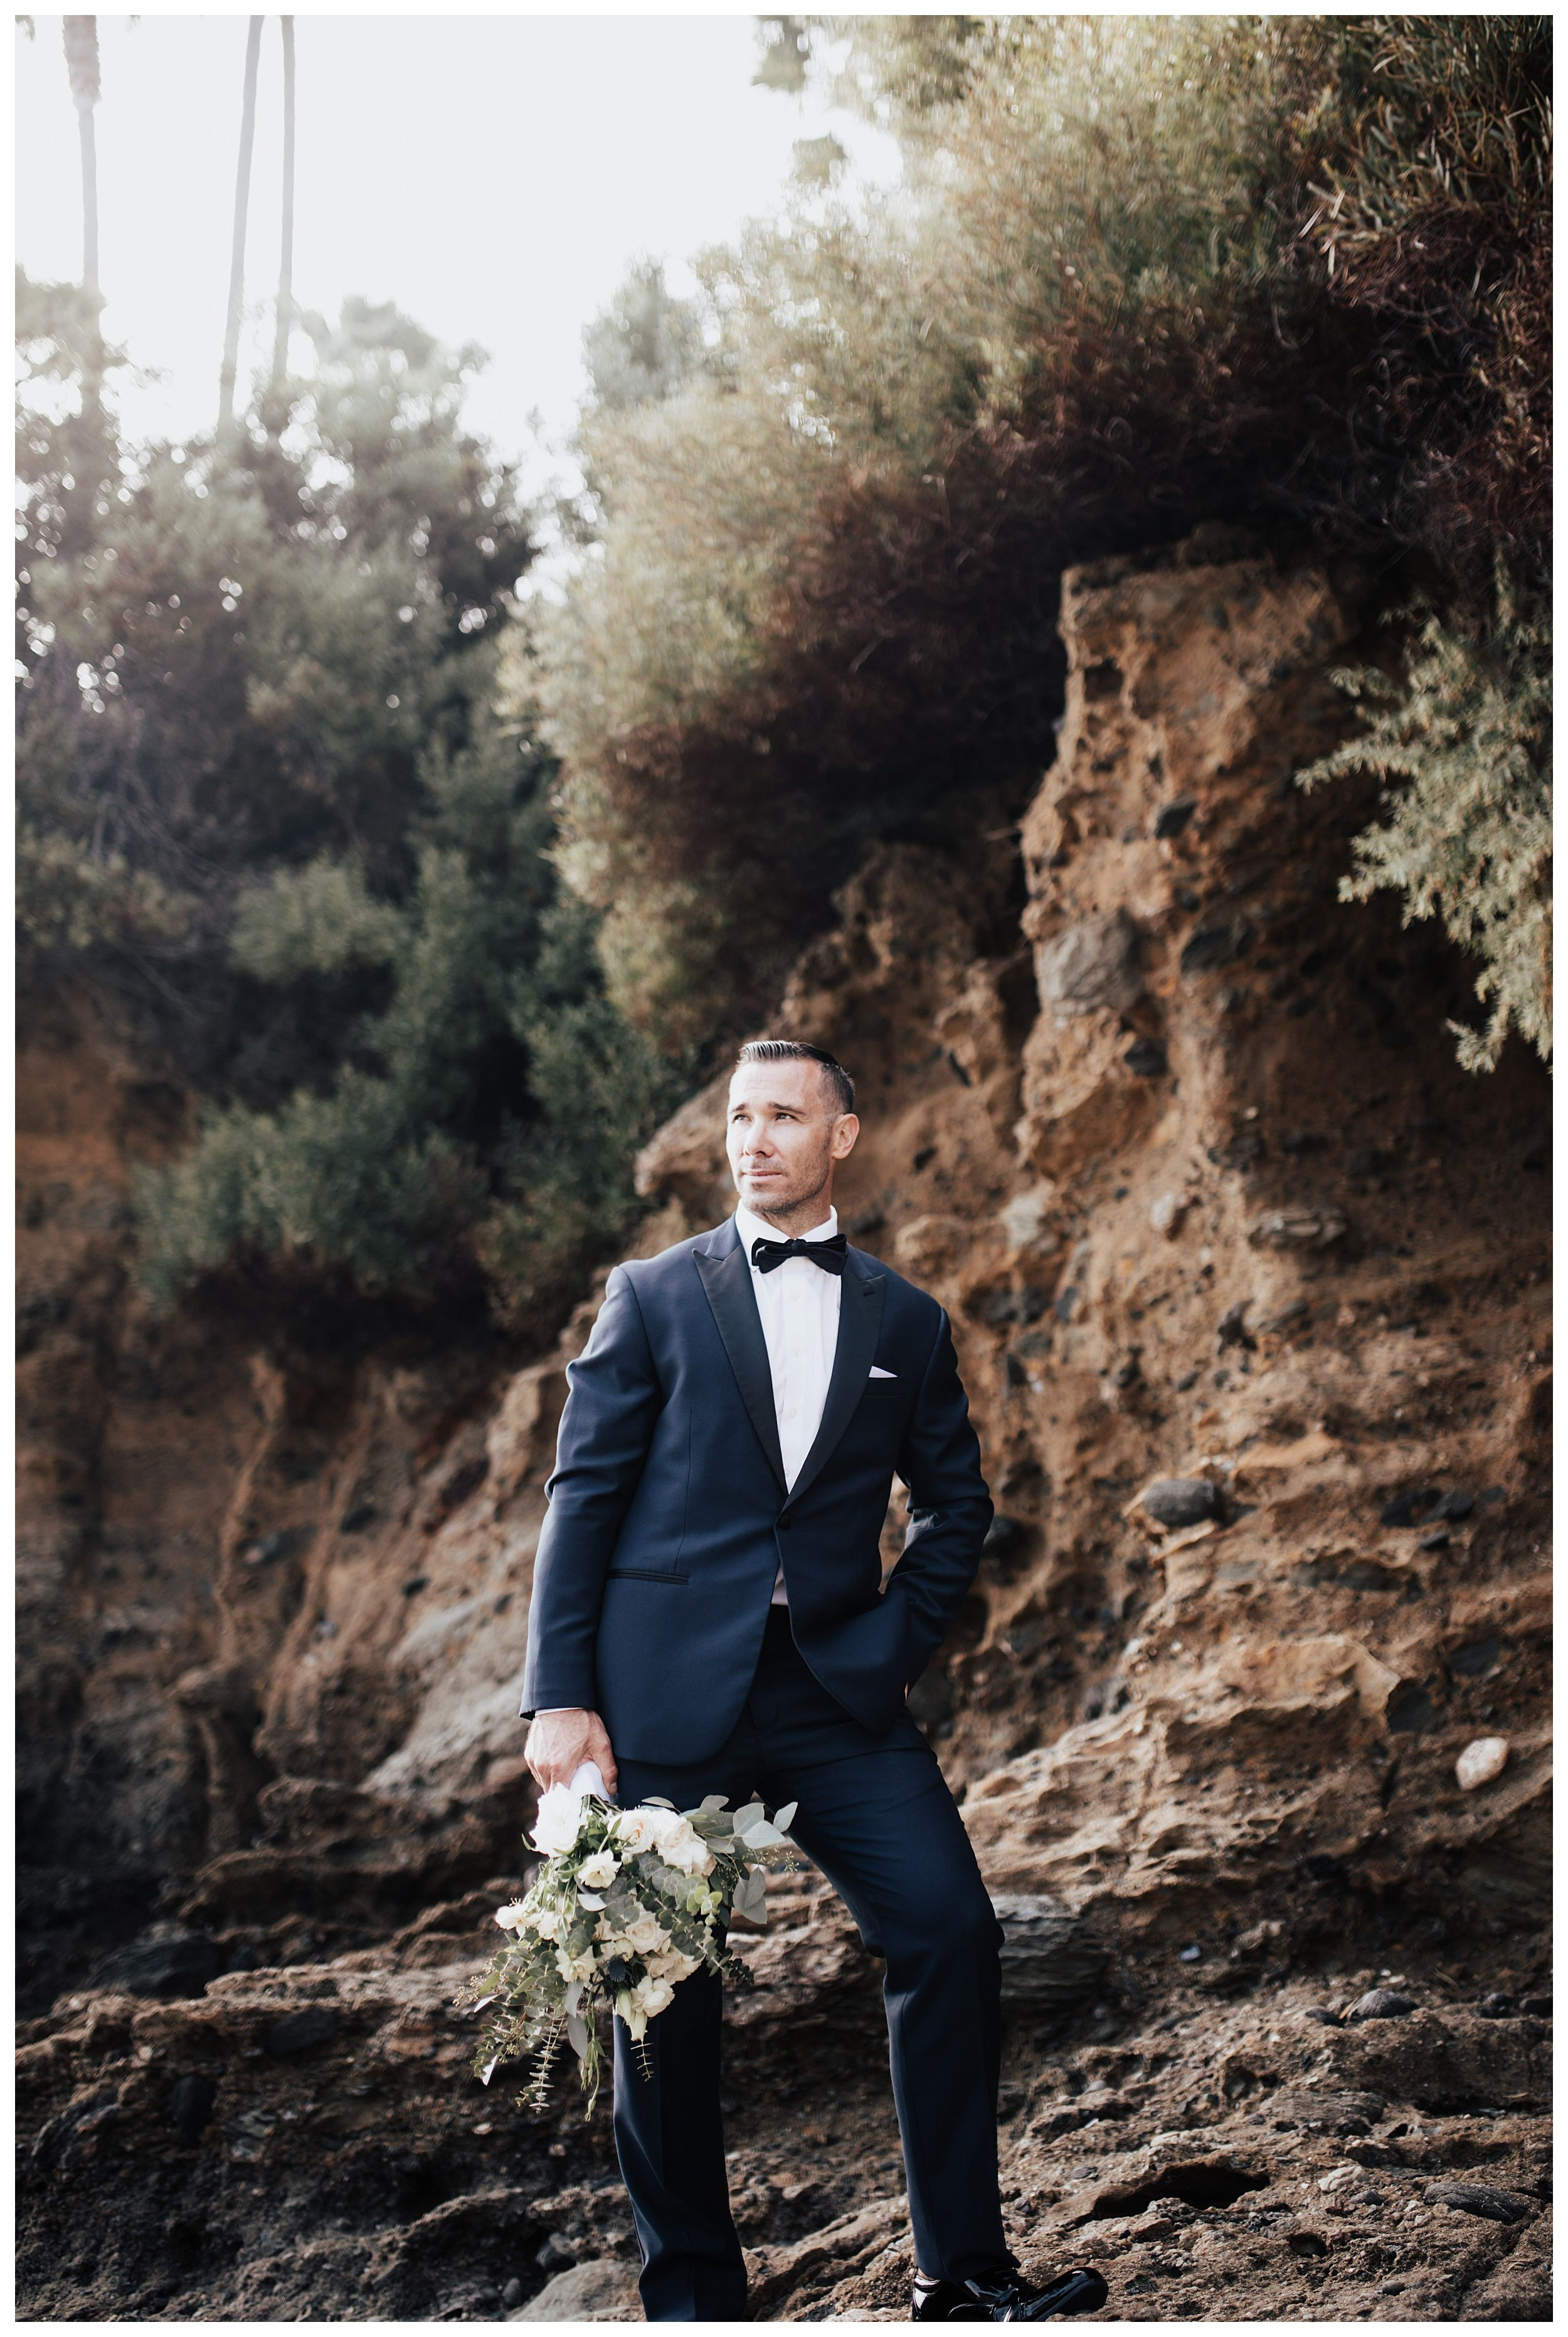 groom on beach, groom holding bouquet, groom wedding photos